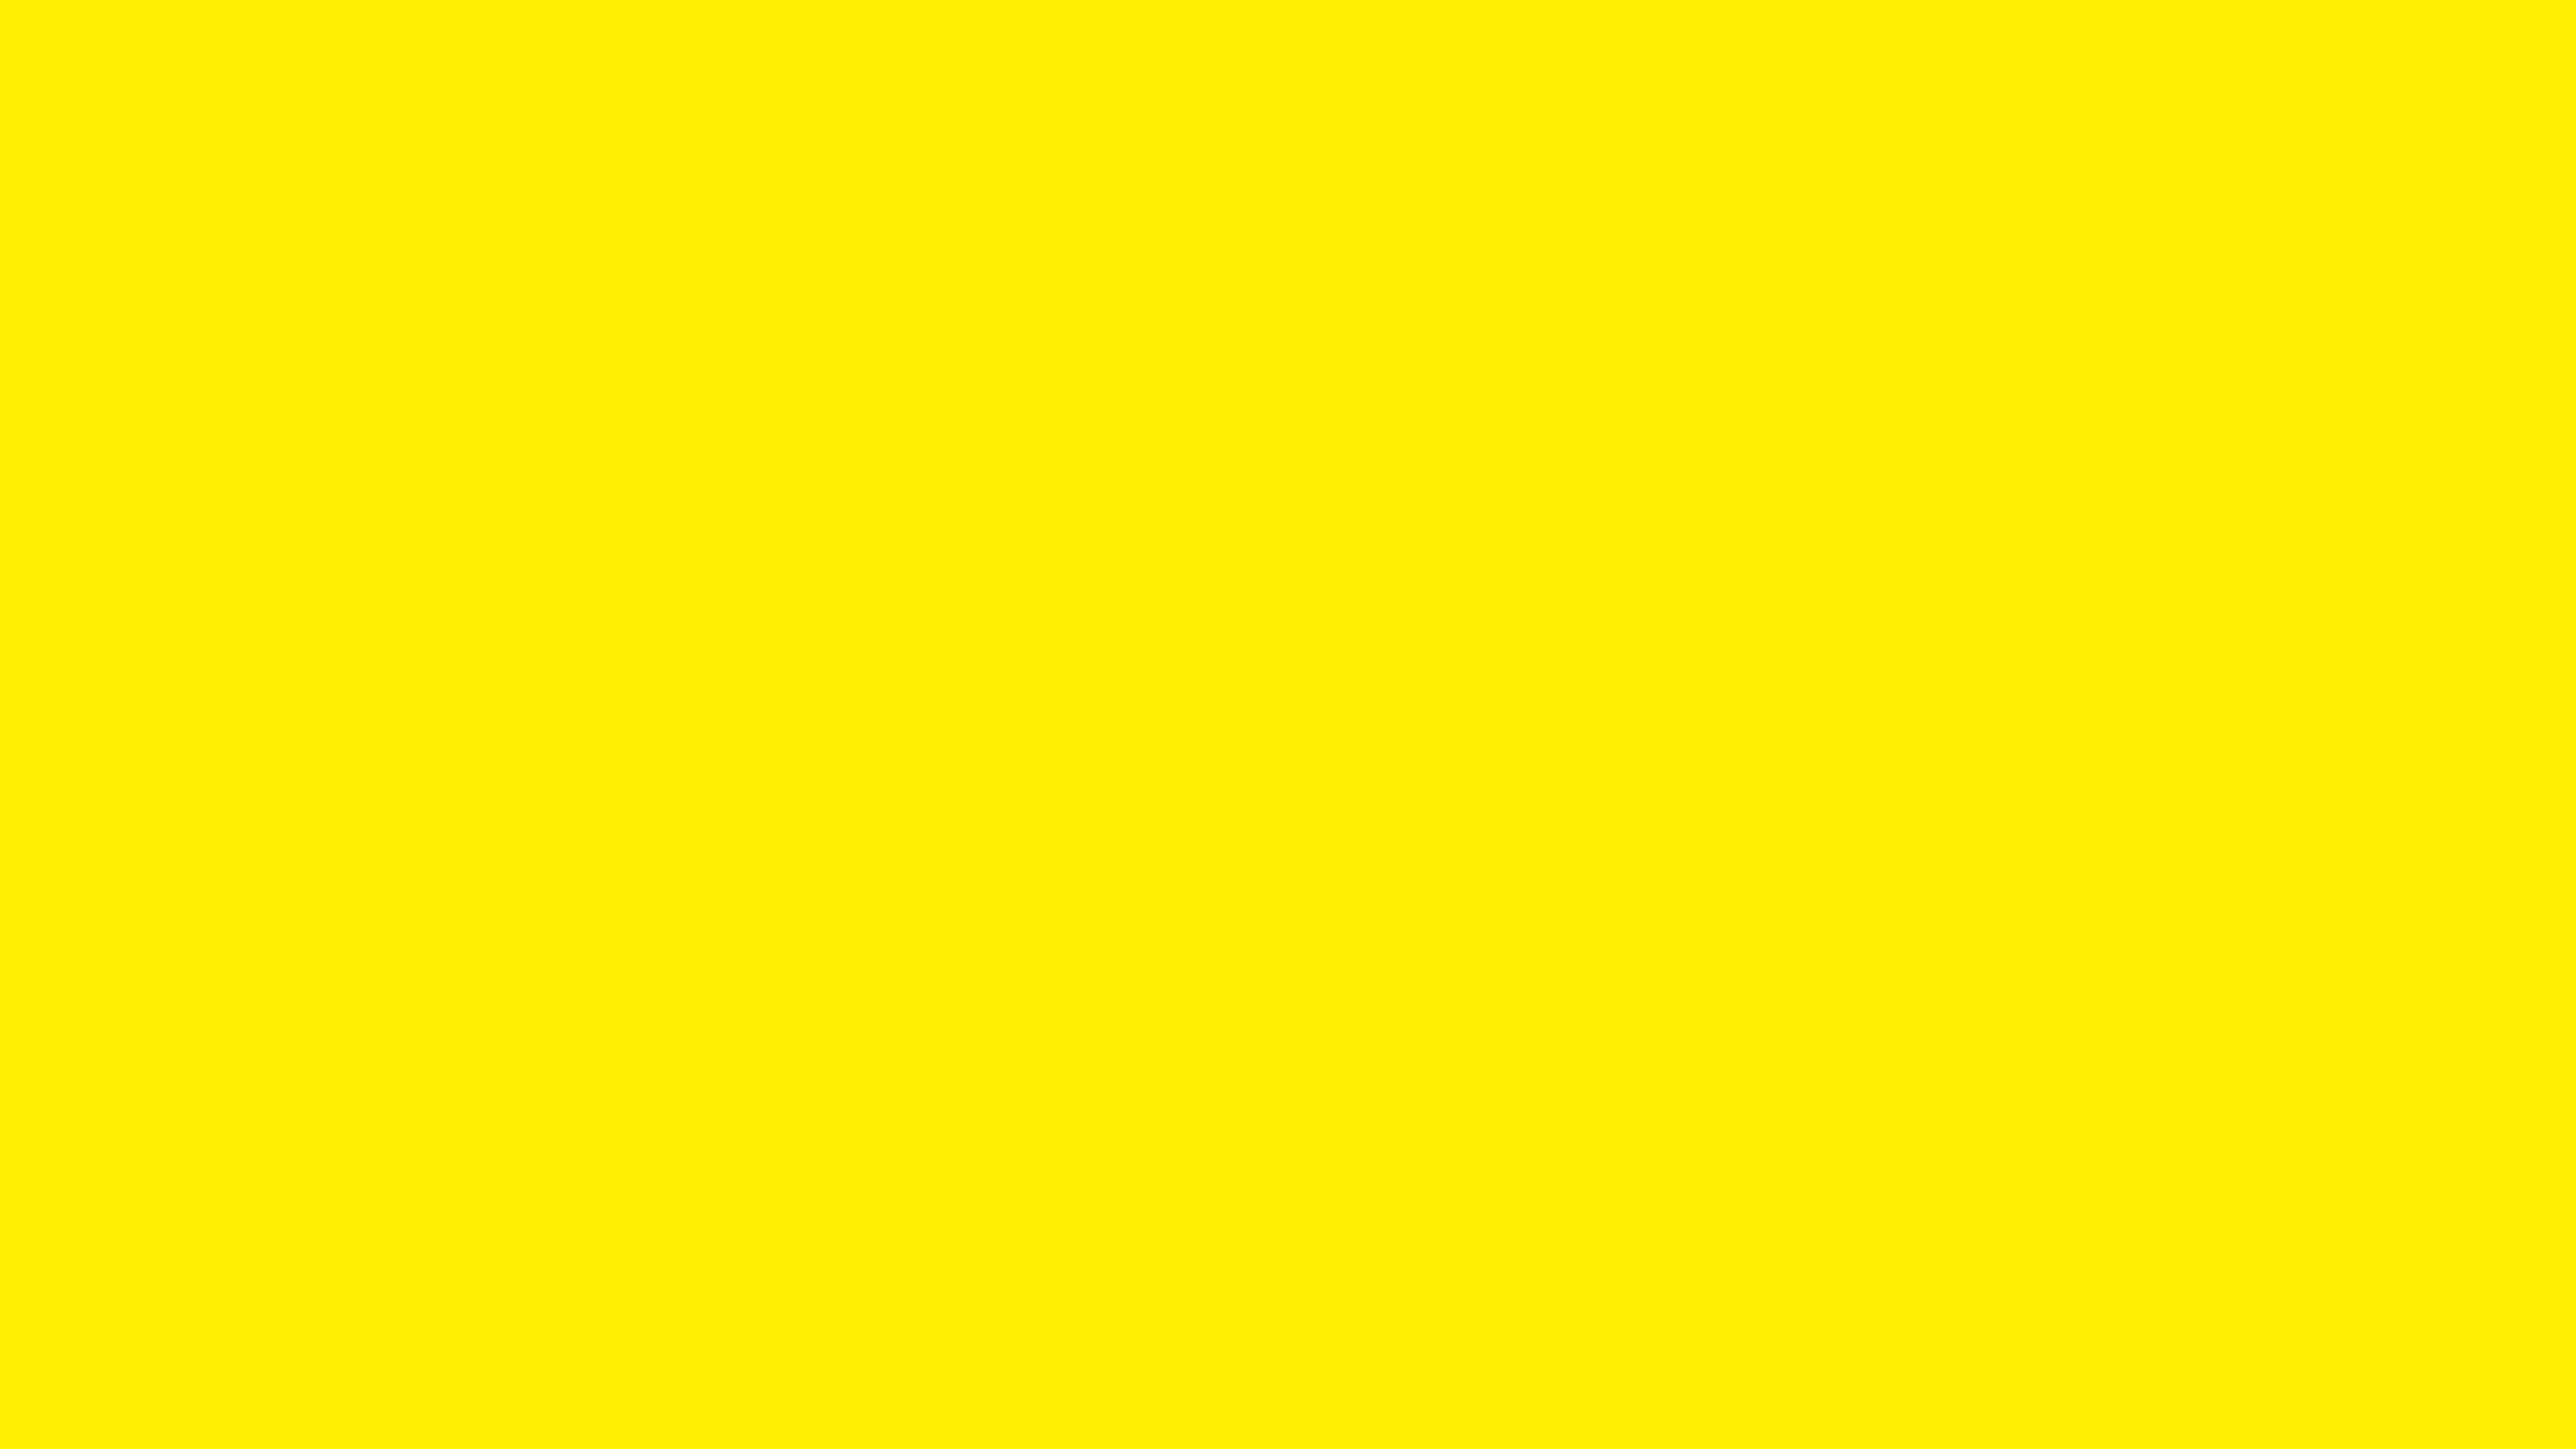 4096x2304 Canary Yellow Solid Color Background